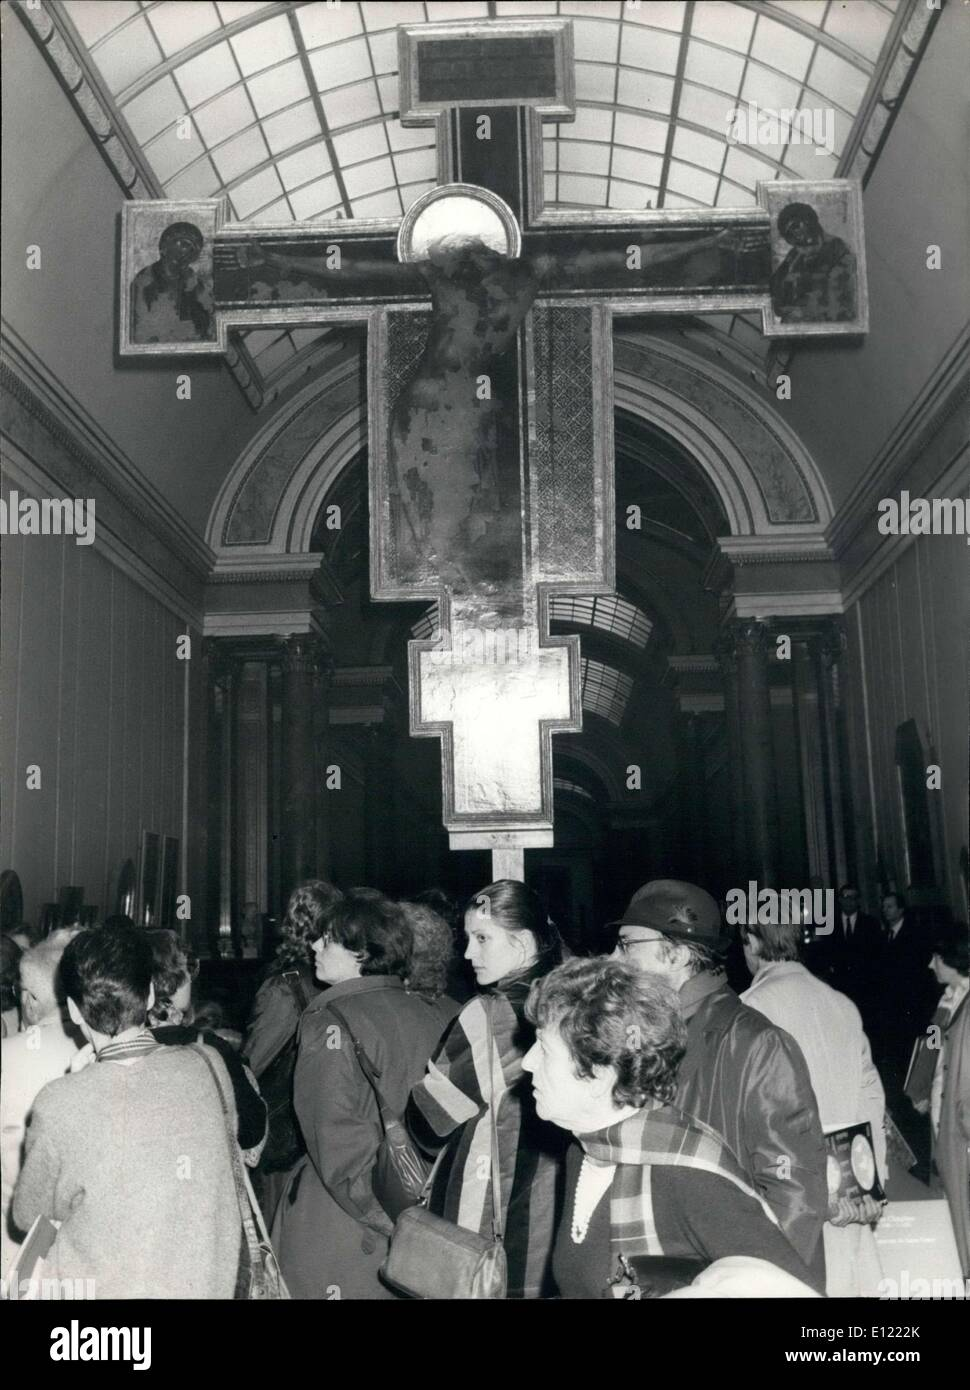 Dec. 07, 1982 - Badly damaged after the floods that ravaged Florence, Italy in November of 1966, the crucifix of Santa Croce has been the object of a long and exemplary restoration in the labs of museums of Florence. The crucifix of Santa Croce was painted by Ceni Di Pepi, called Cinabue (1240-1302). The crucifix is painted on canvas which is glued to a board according to rules instituted by Cennini later on. The famous crucifix of Cinabue was restored by Umberto Baldini during the 10 years following the catastrophe in Florence - Stock Image